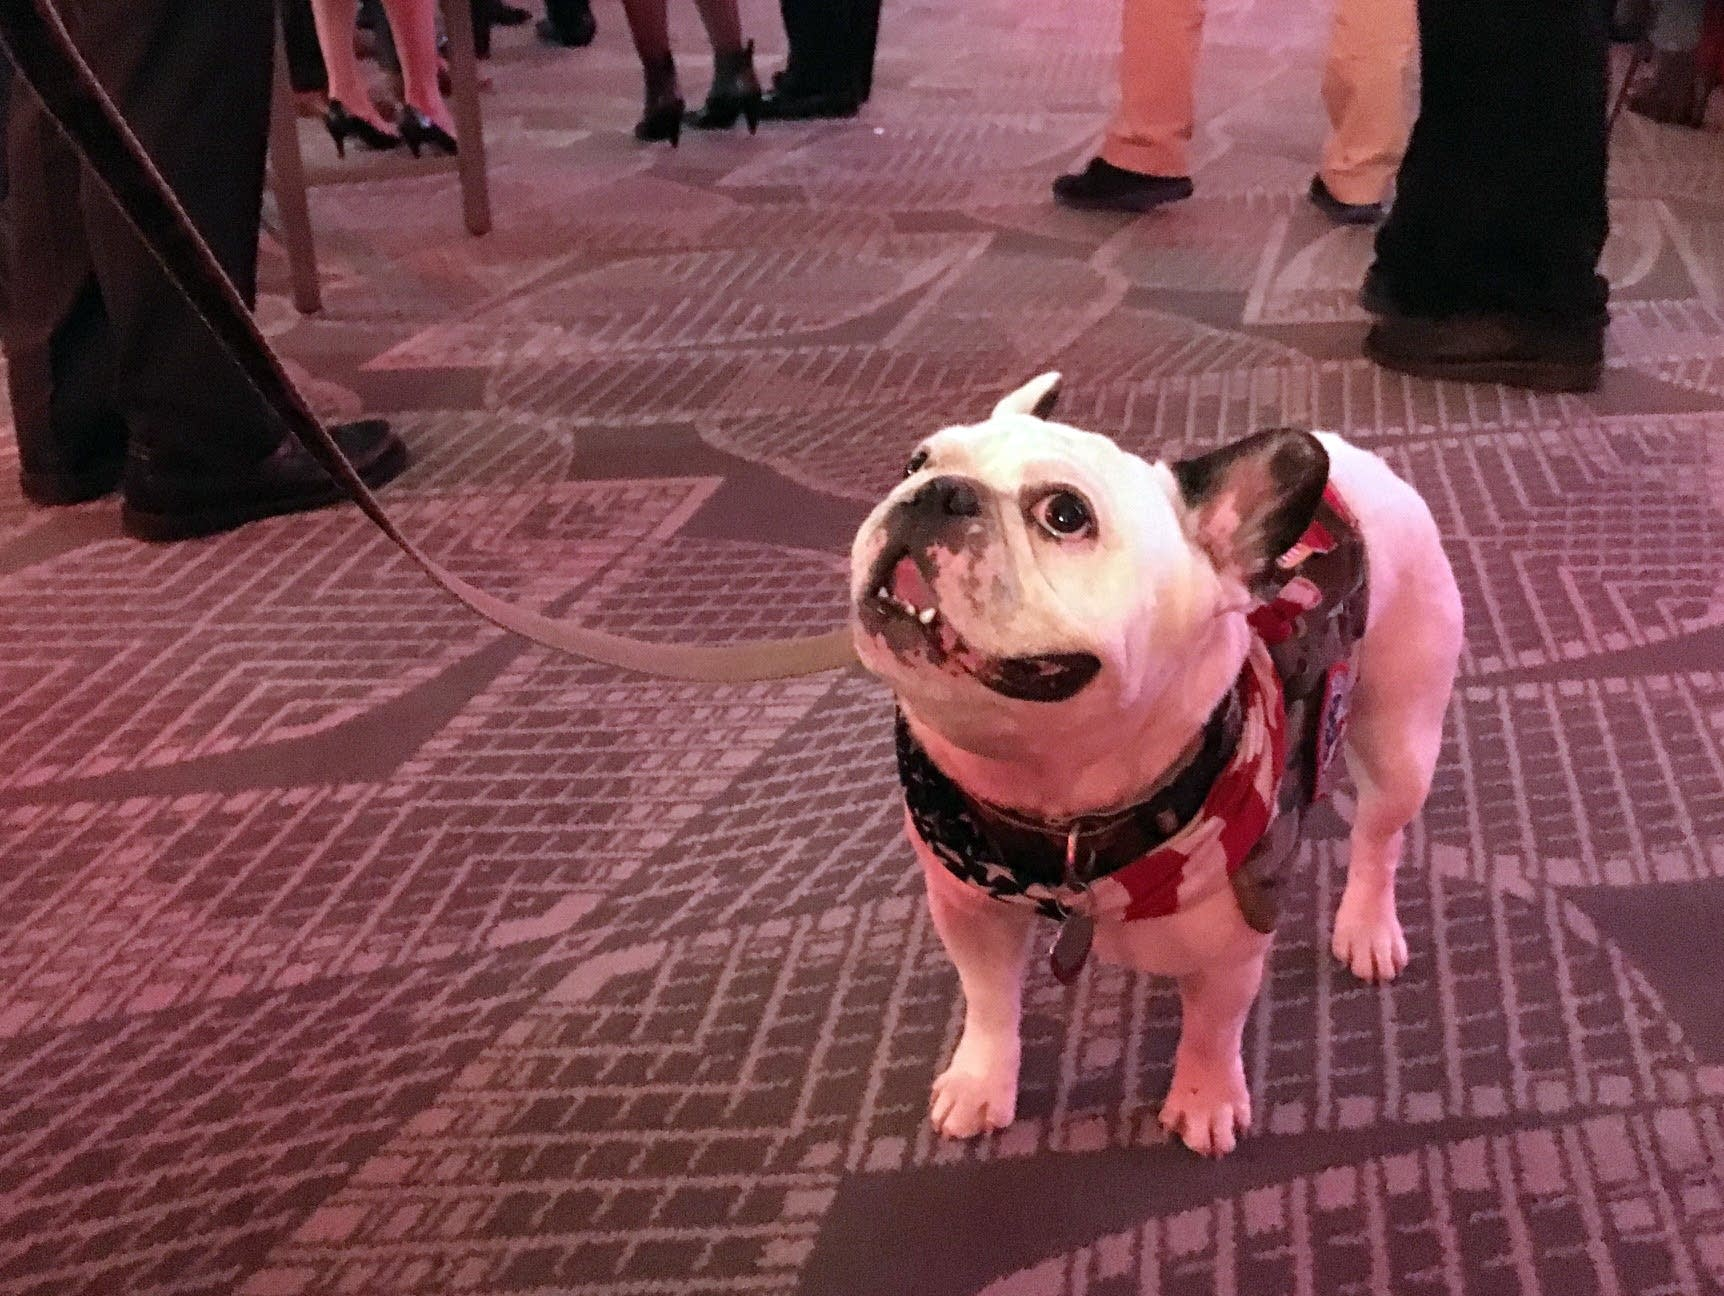 Lloyd the French bulldog at the GOP viewing party.